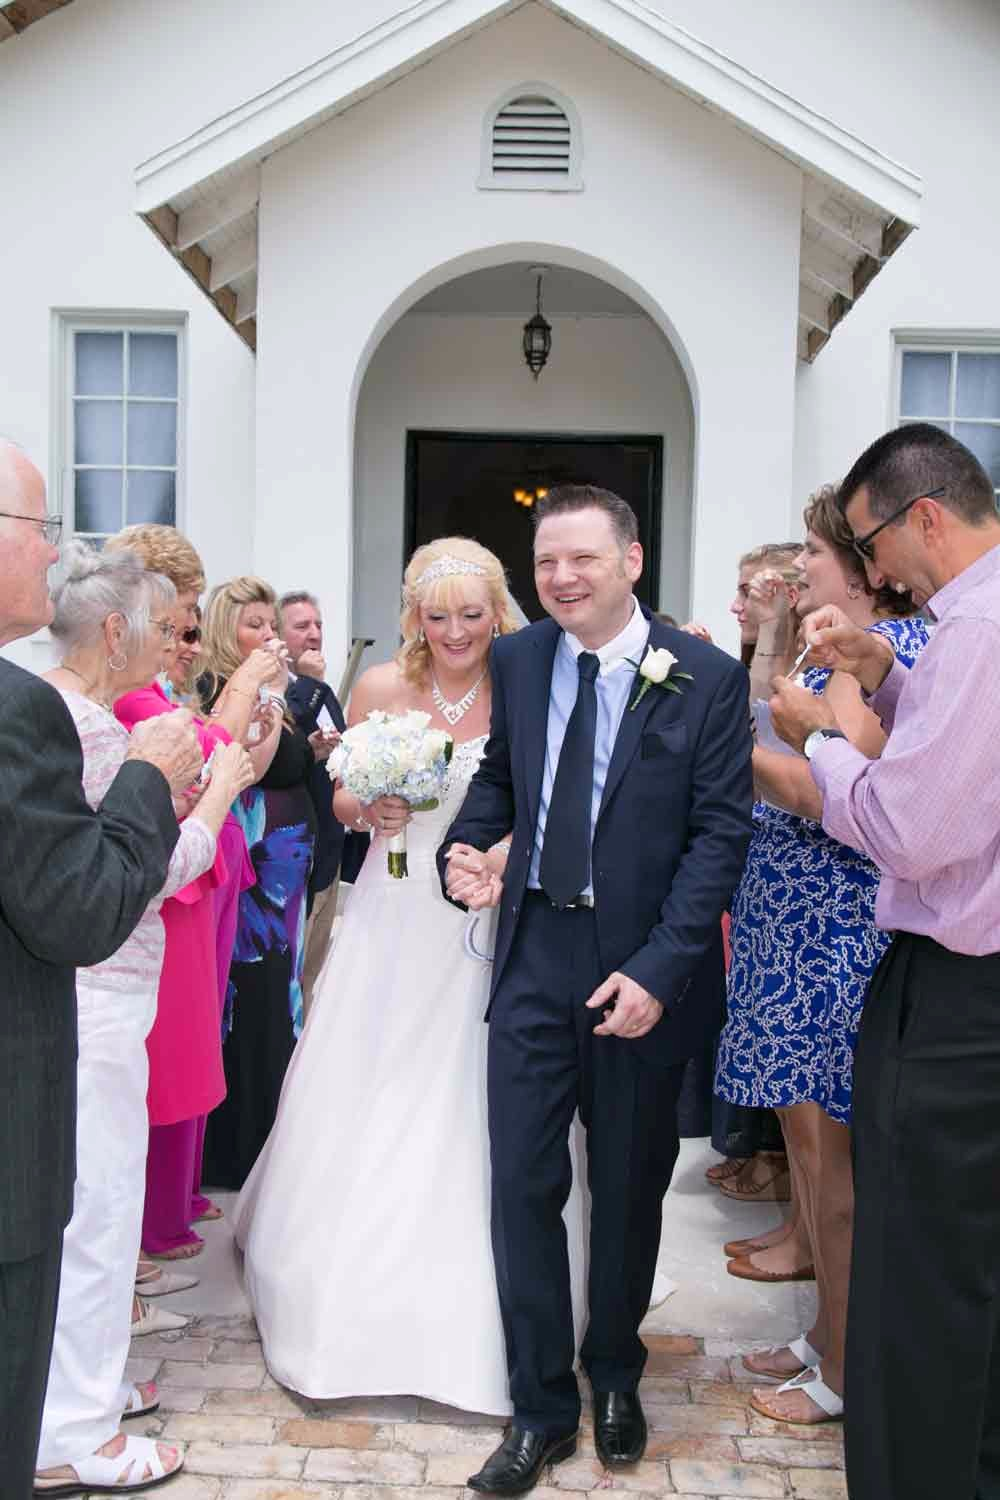 Congratulations to the happy couple just married in Central Florida!